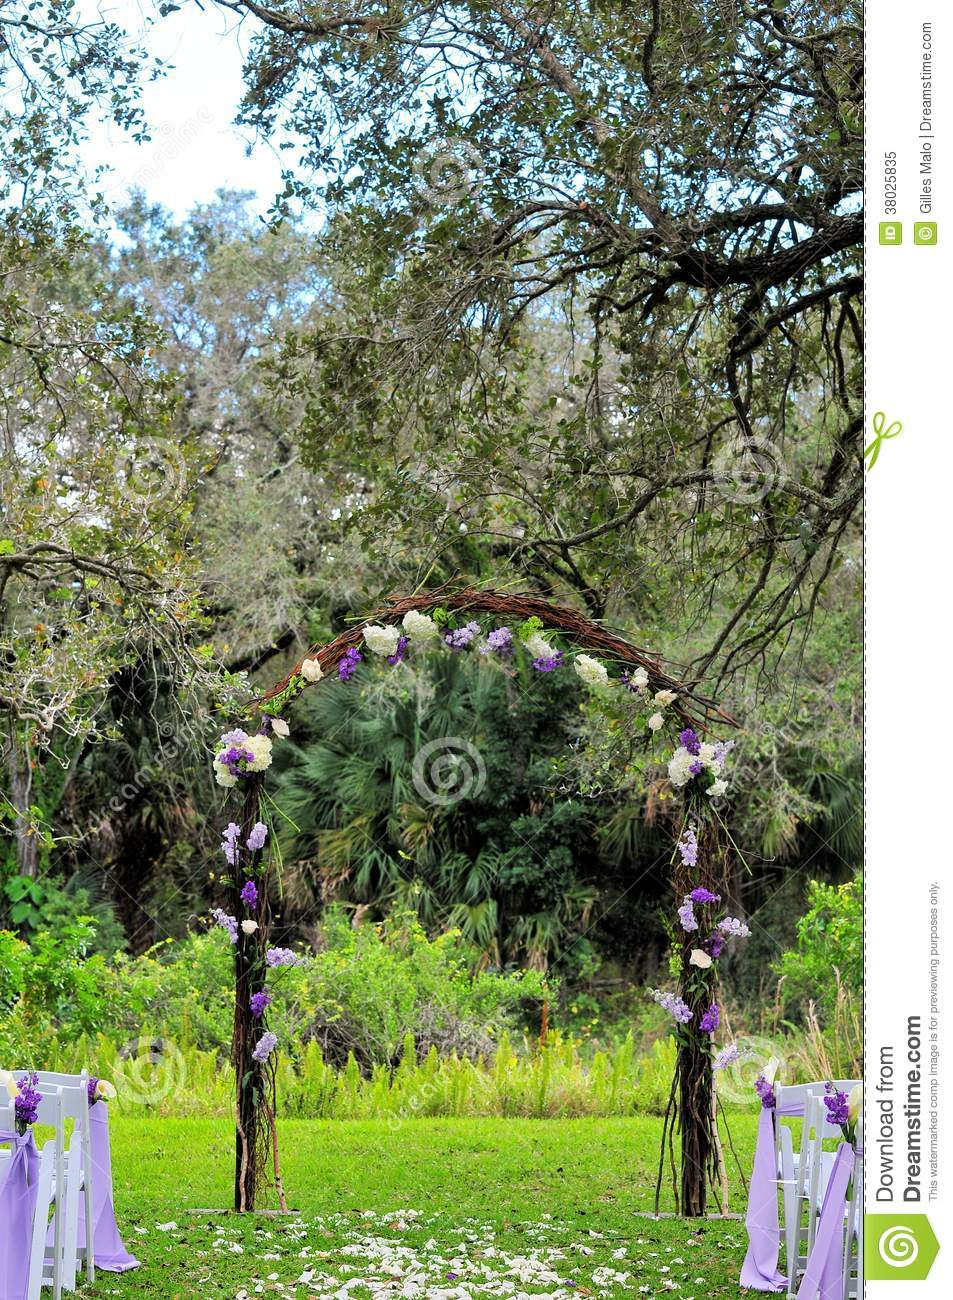 Outdoor Wedding Venue In Florida Stock Image - Image of decorations ...